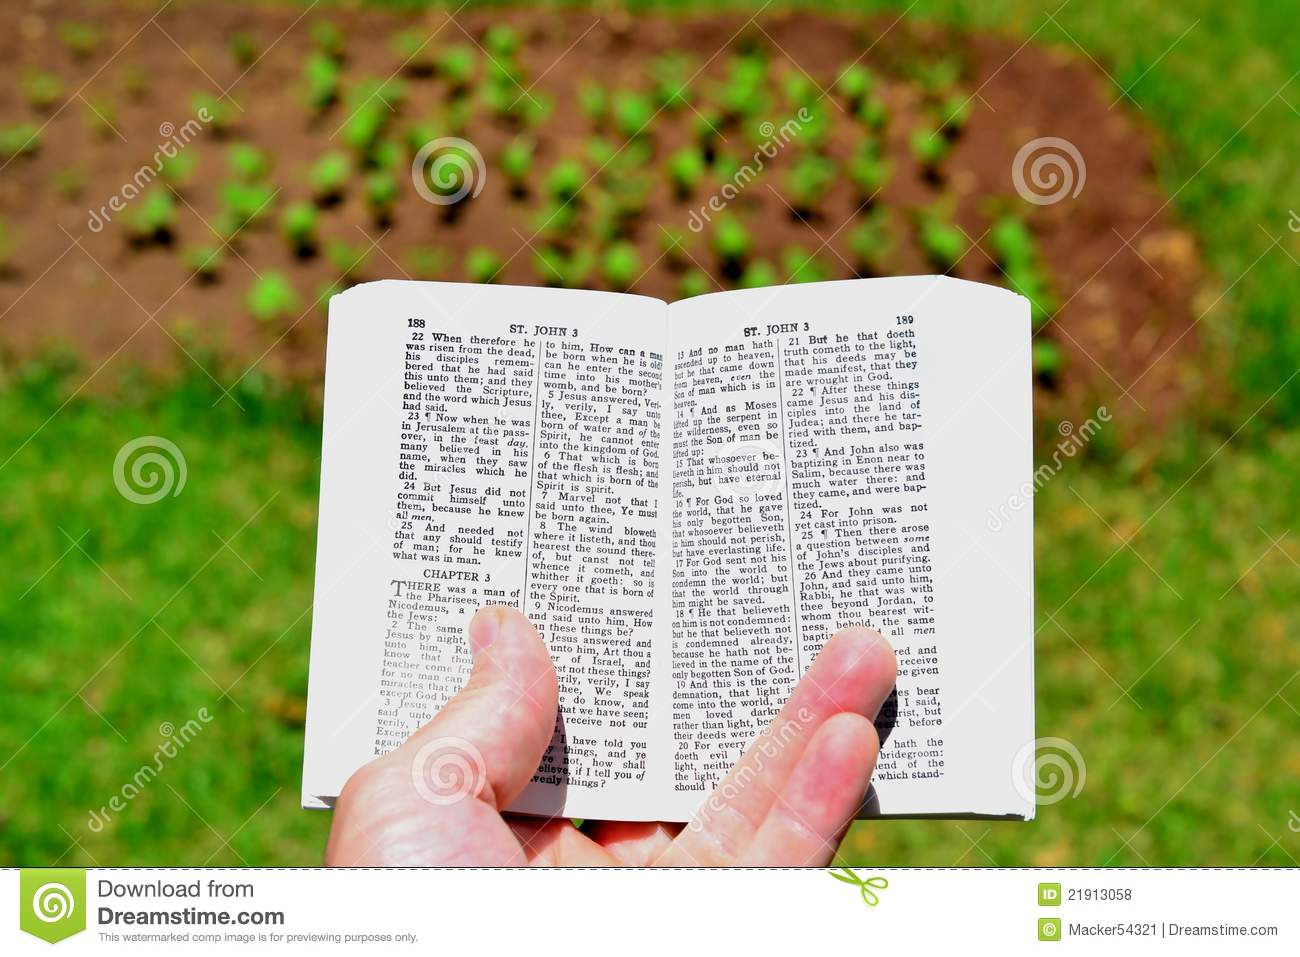 Reap what you sow  stock photo  Image of book, seedling - 21913058